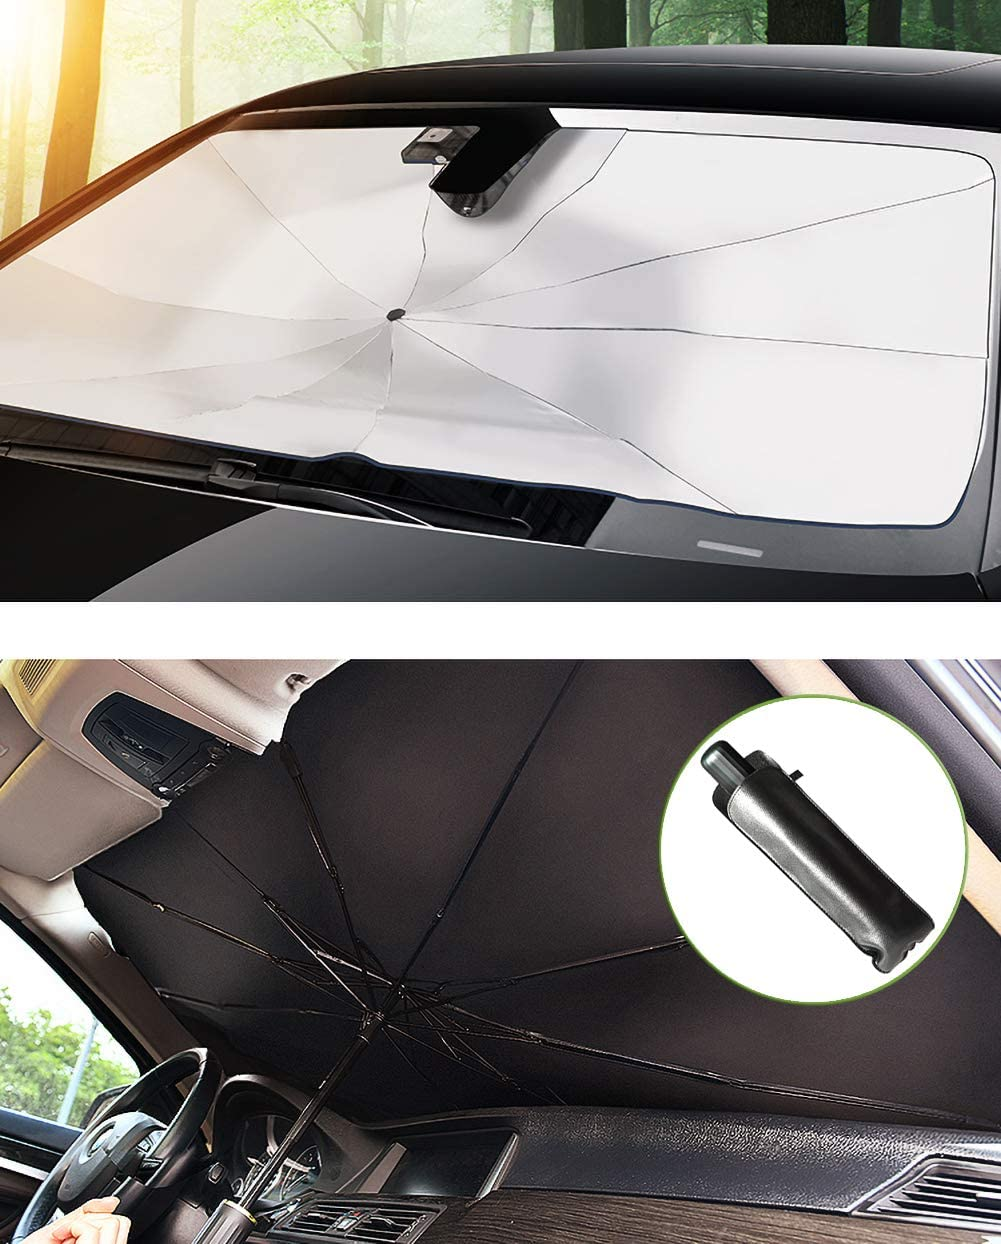 Large Mplerven Car Windshield Sunshades Auto Sunshade Cover Anti-UV Rays Keep Vehicle Cool and Without Damage Suitable for Windshields of Various Sizes